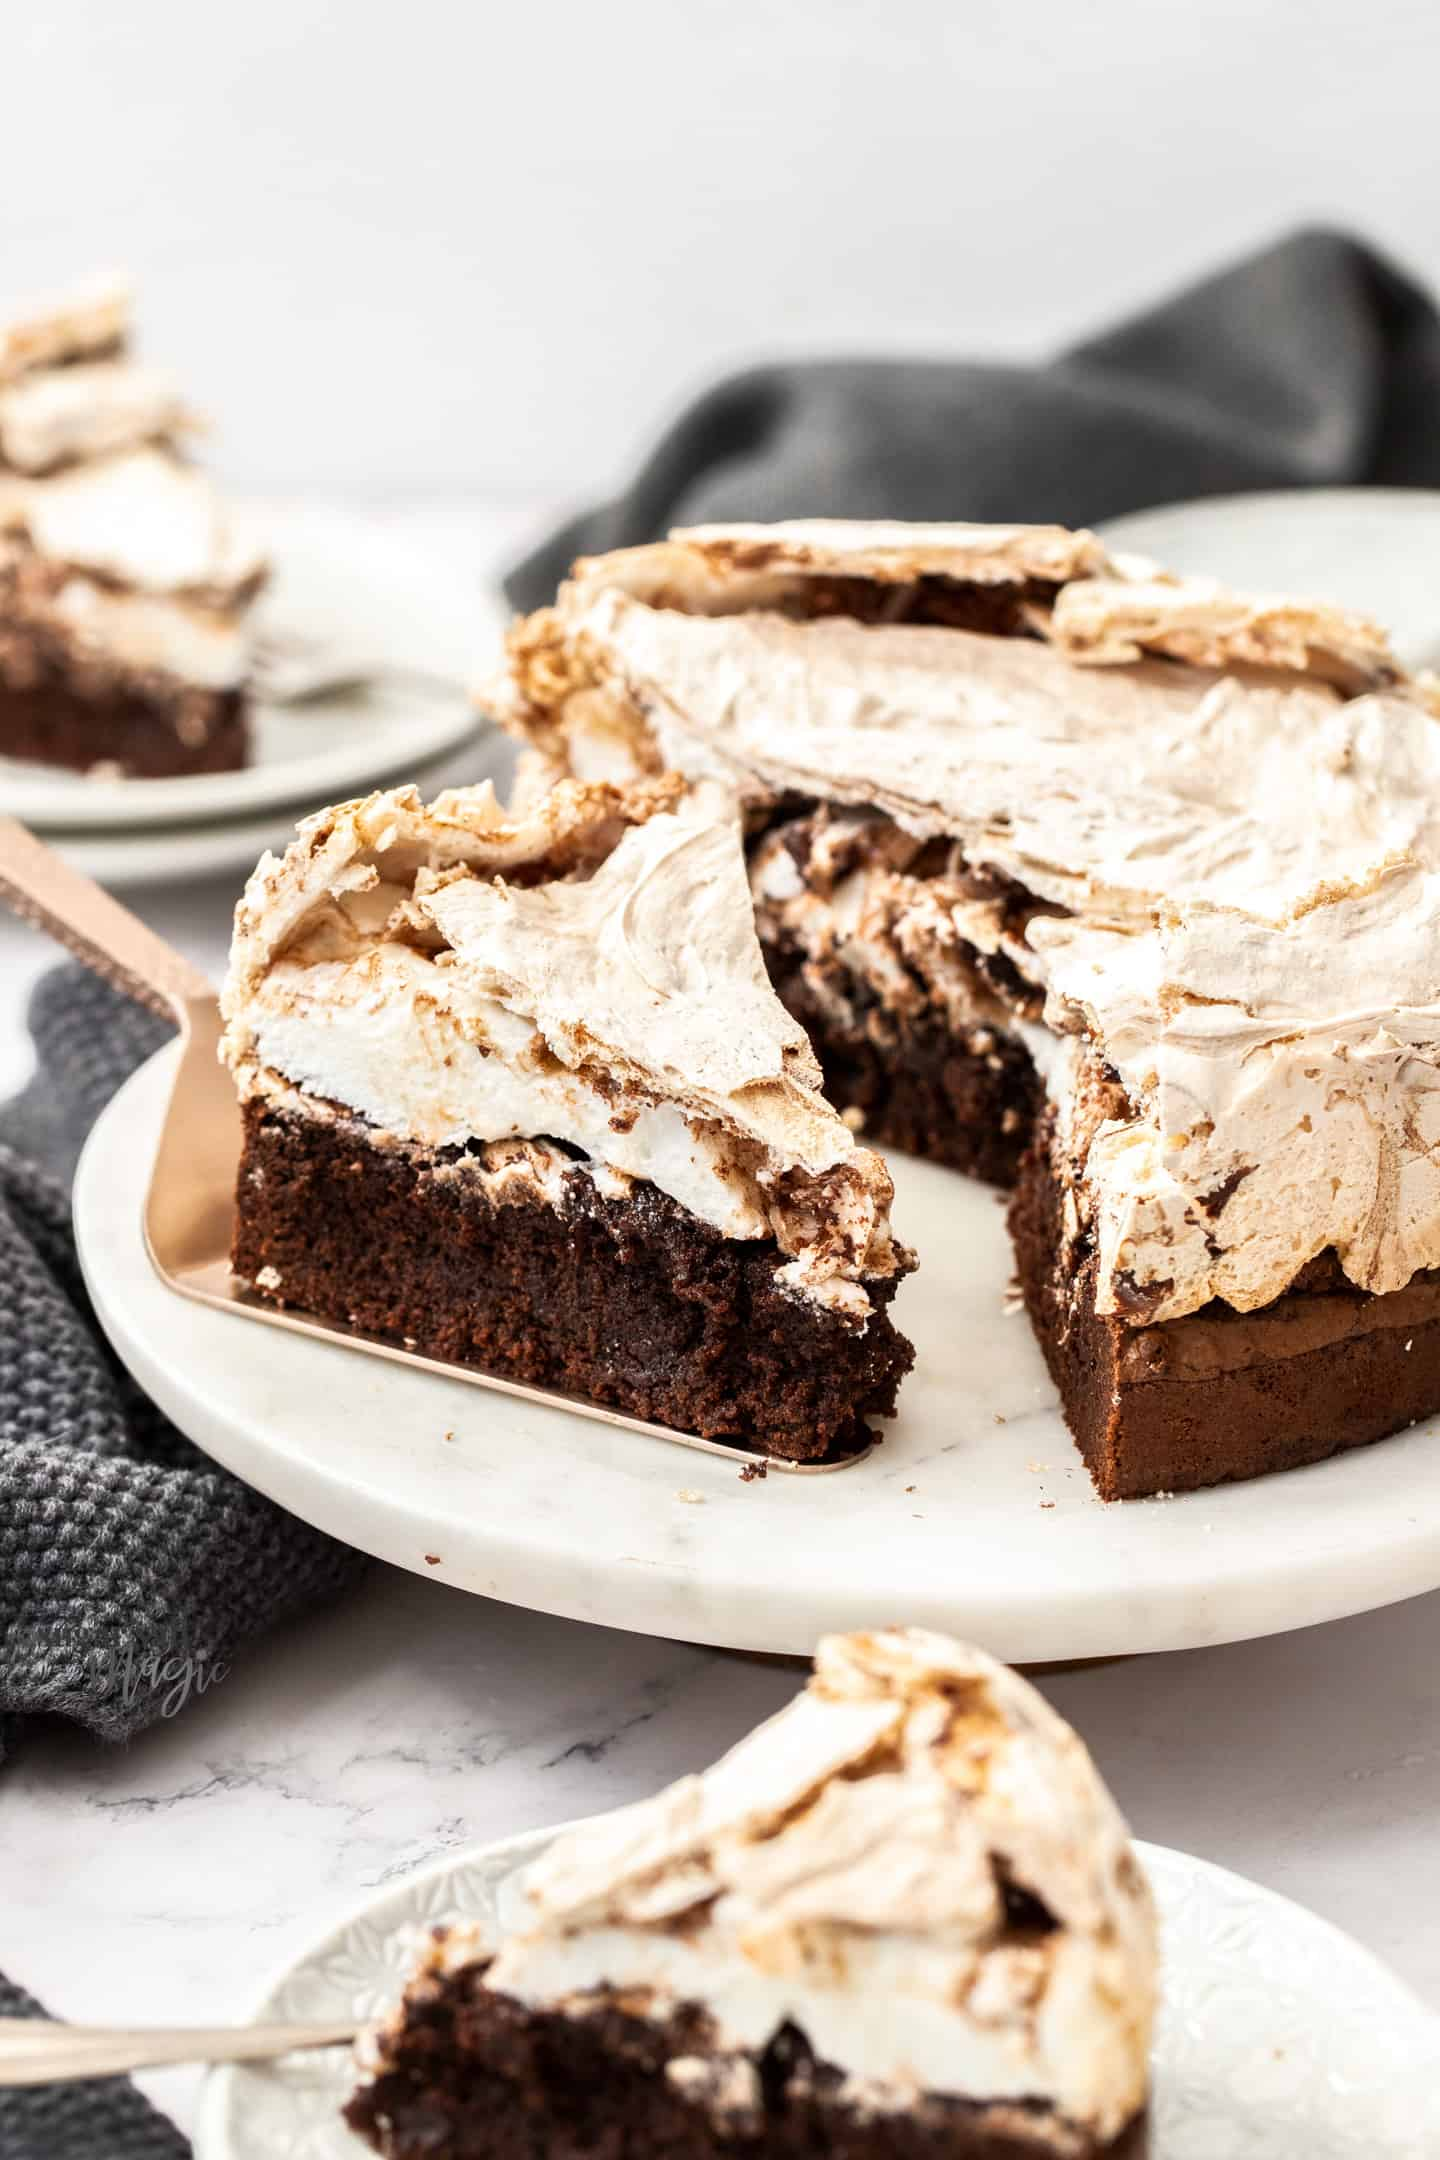 A slice of chocolate meringue cake on a white marble platter.